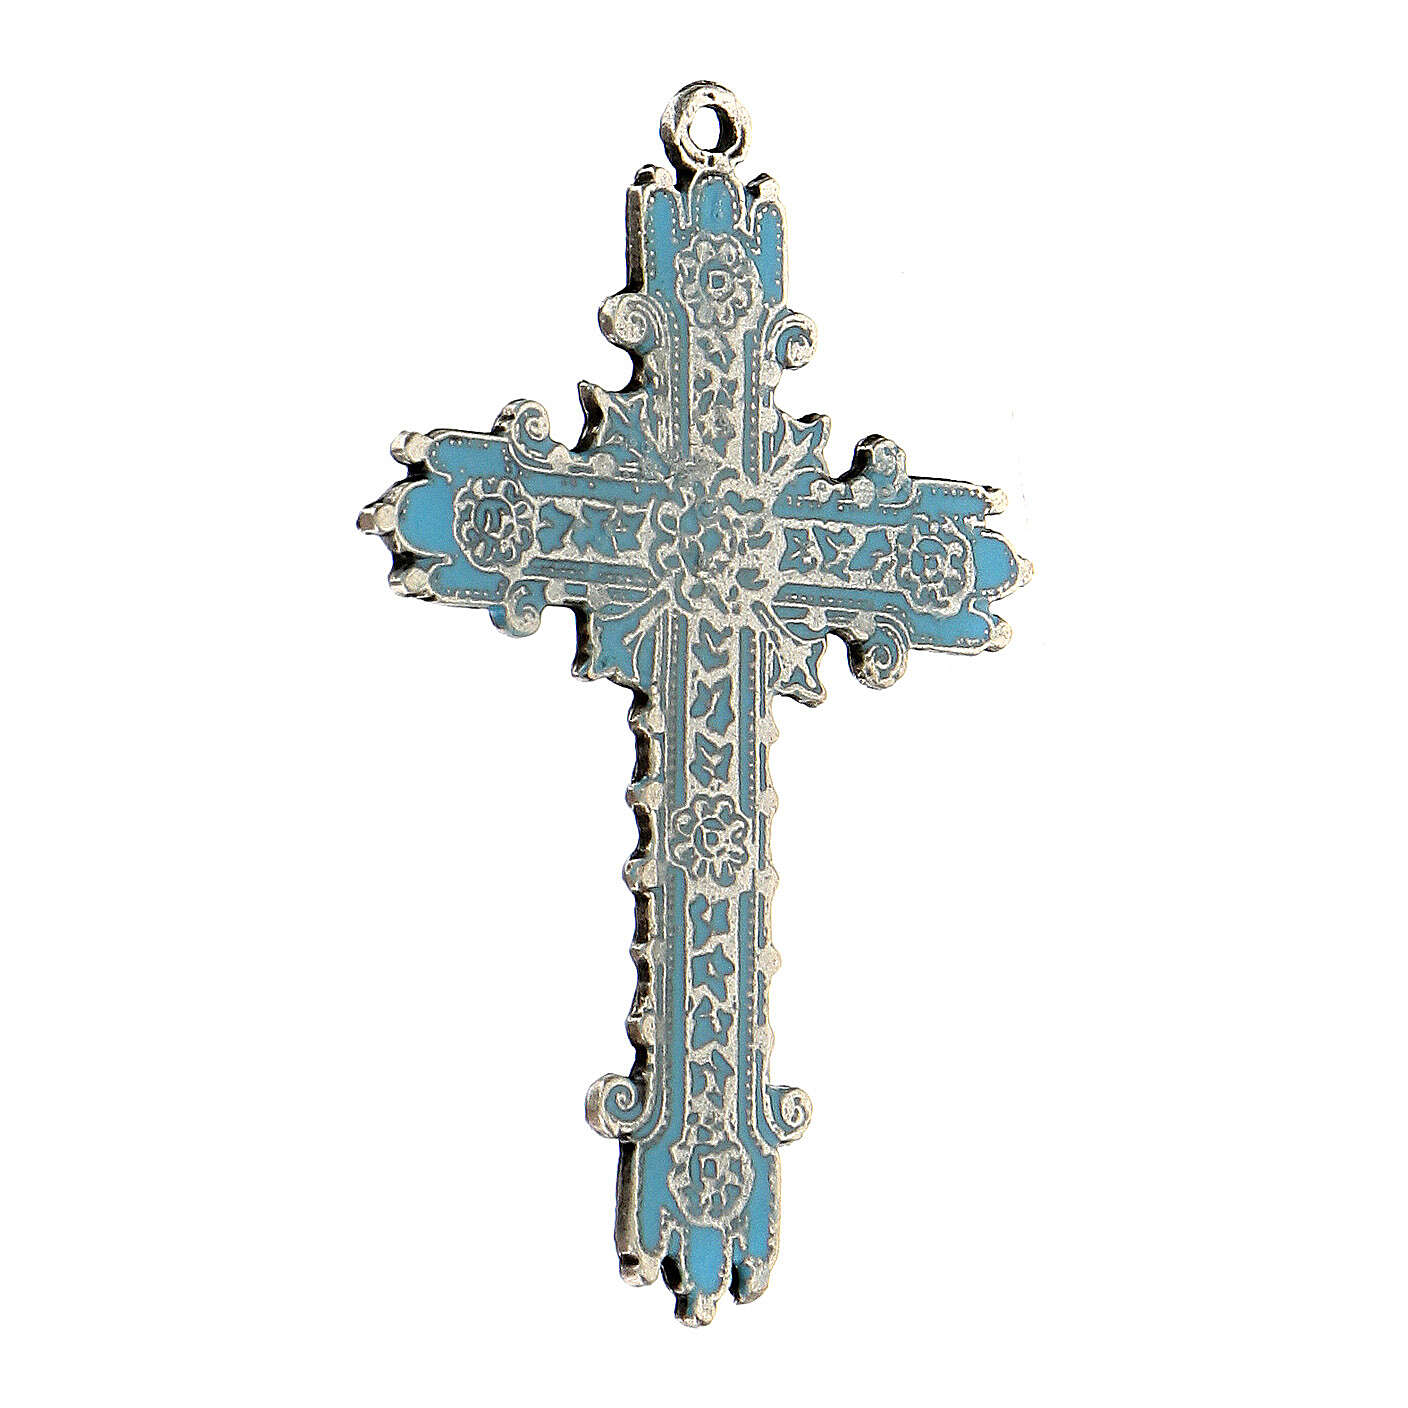 Antique silver and turquoise enamel cross pendant 4